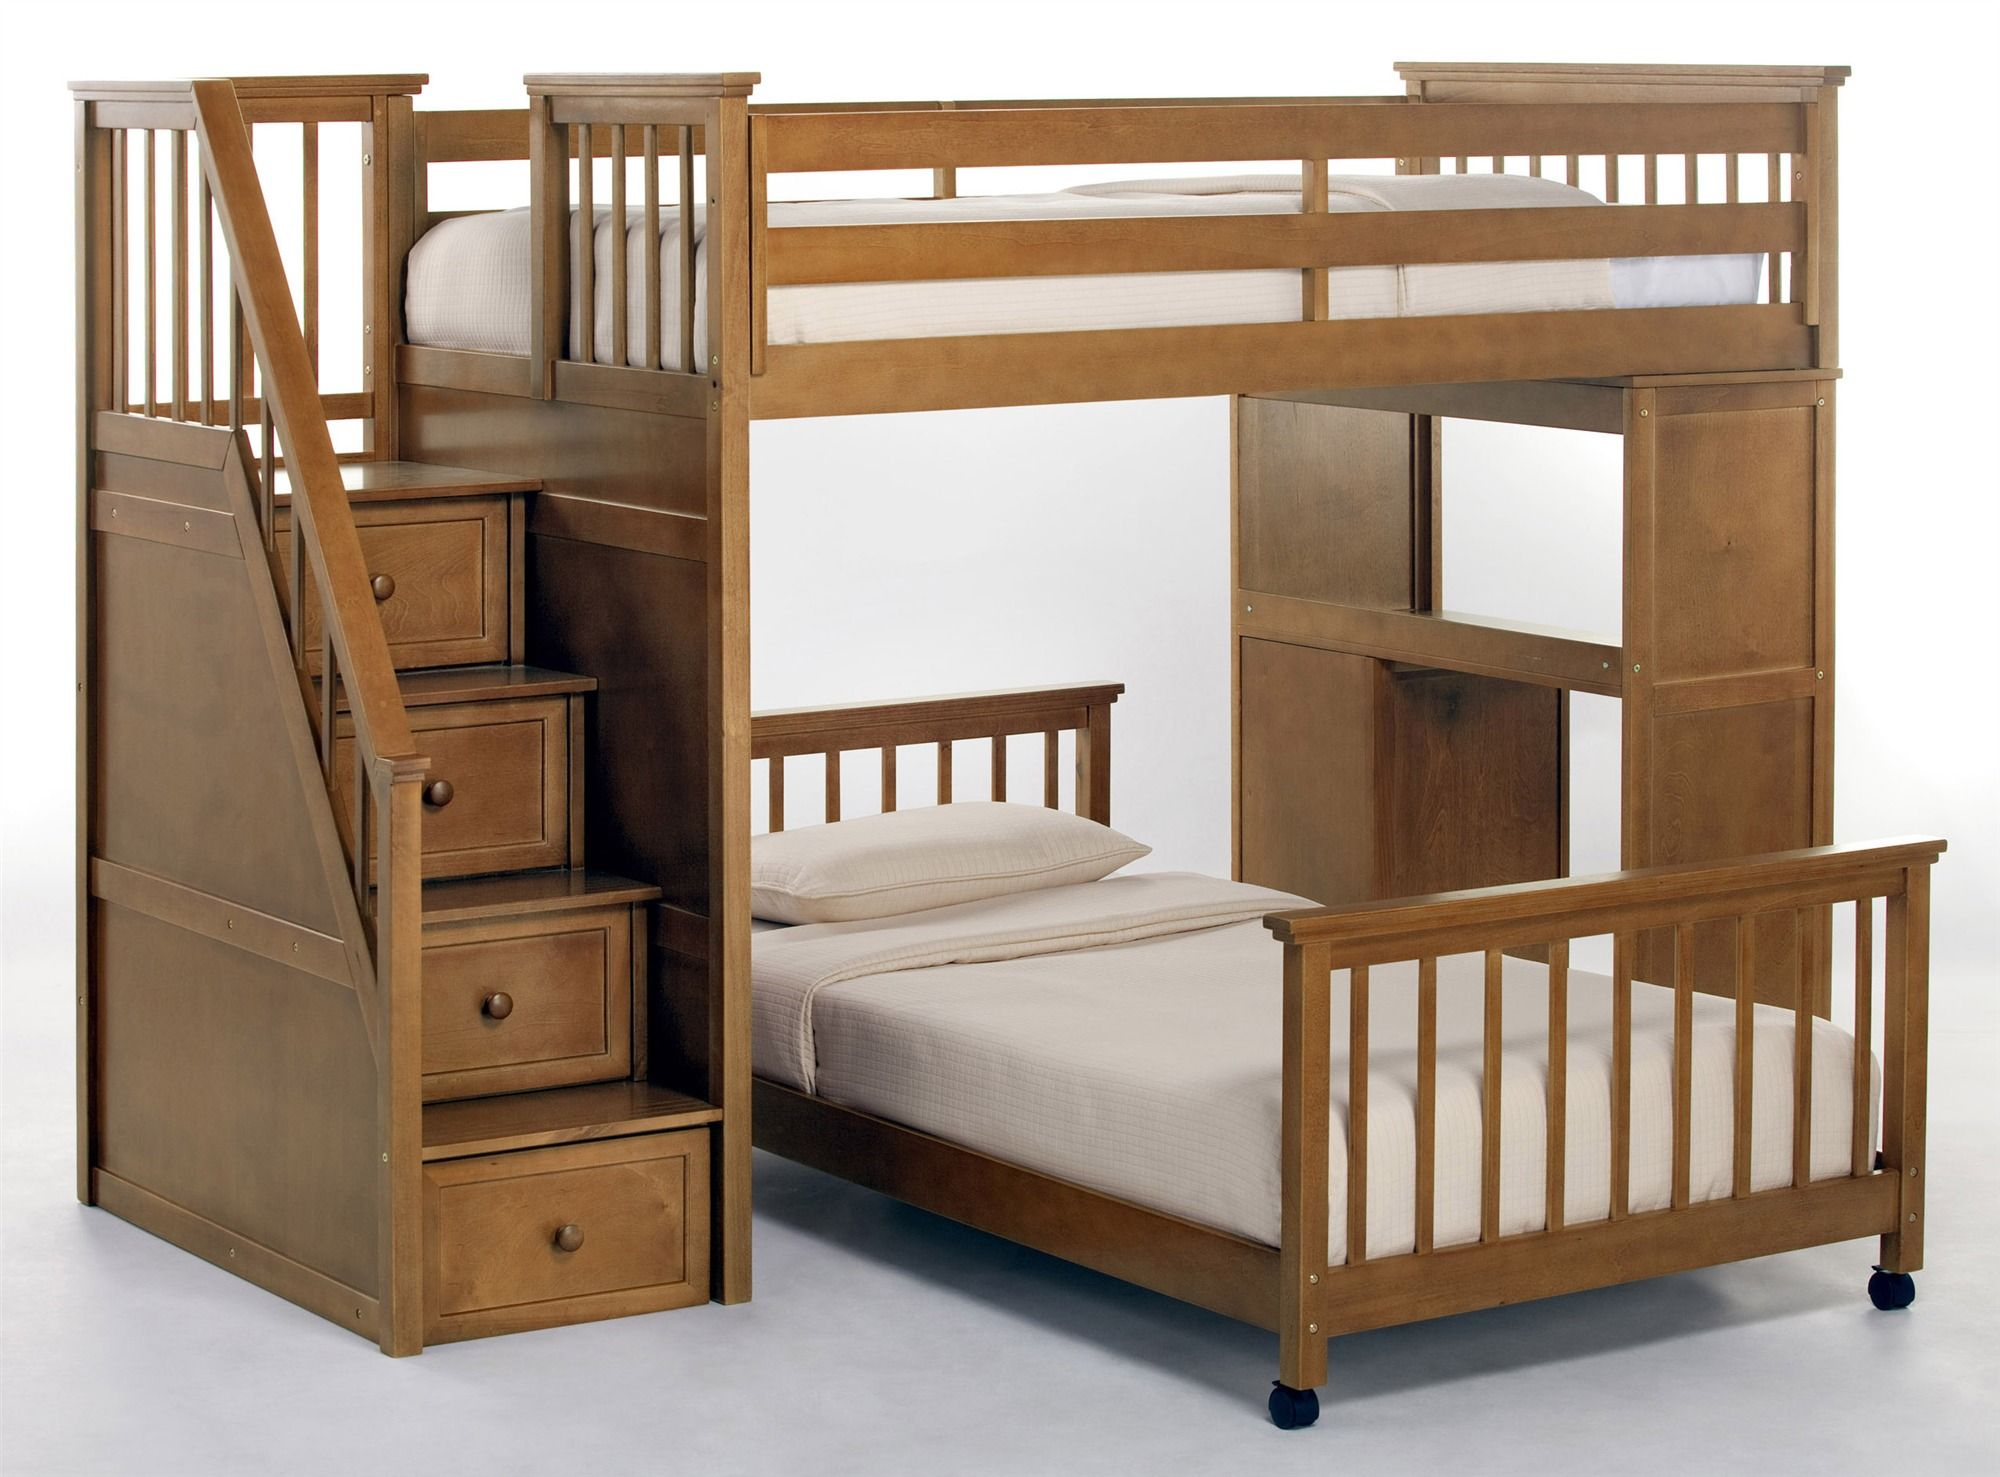 loft bed images 99.5 in. Stair Loft w Twin Lower Bed